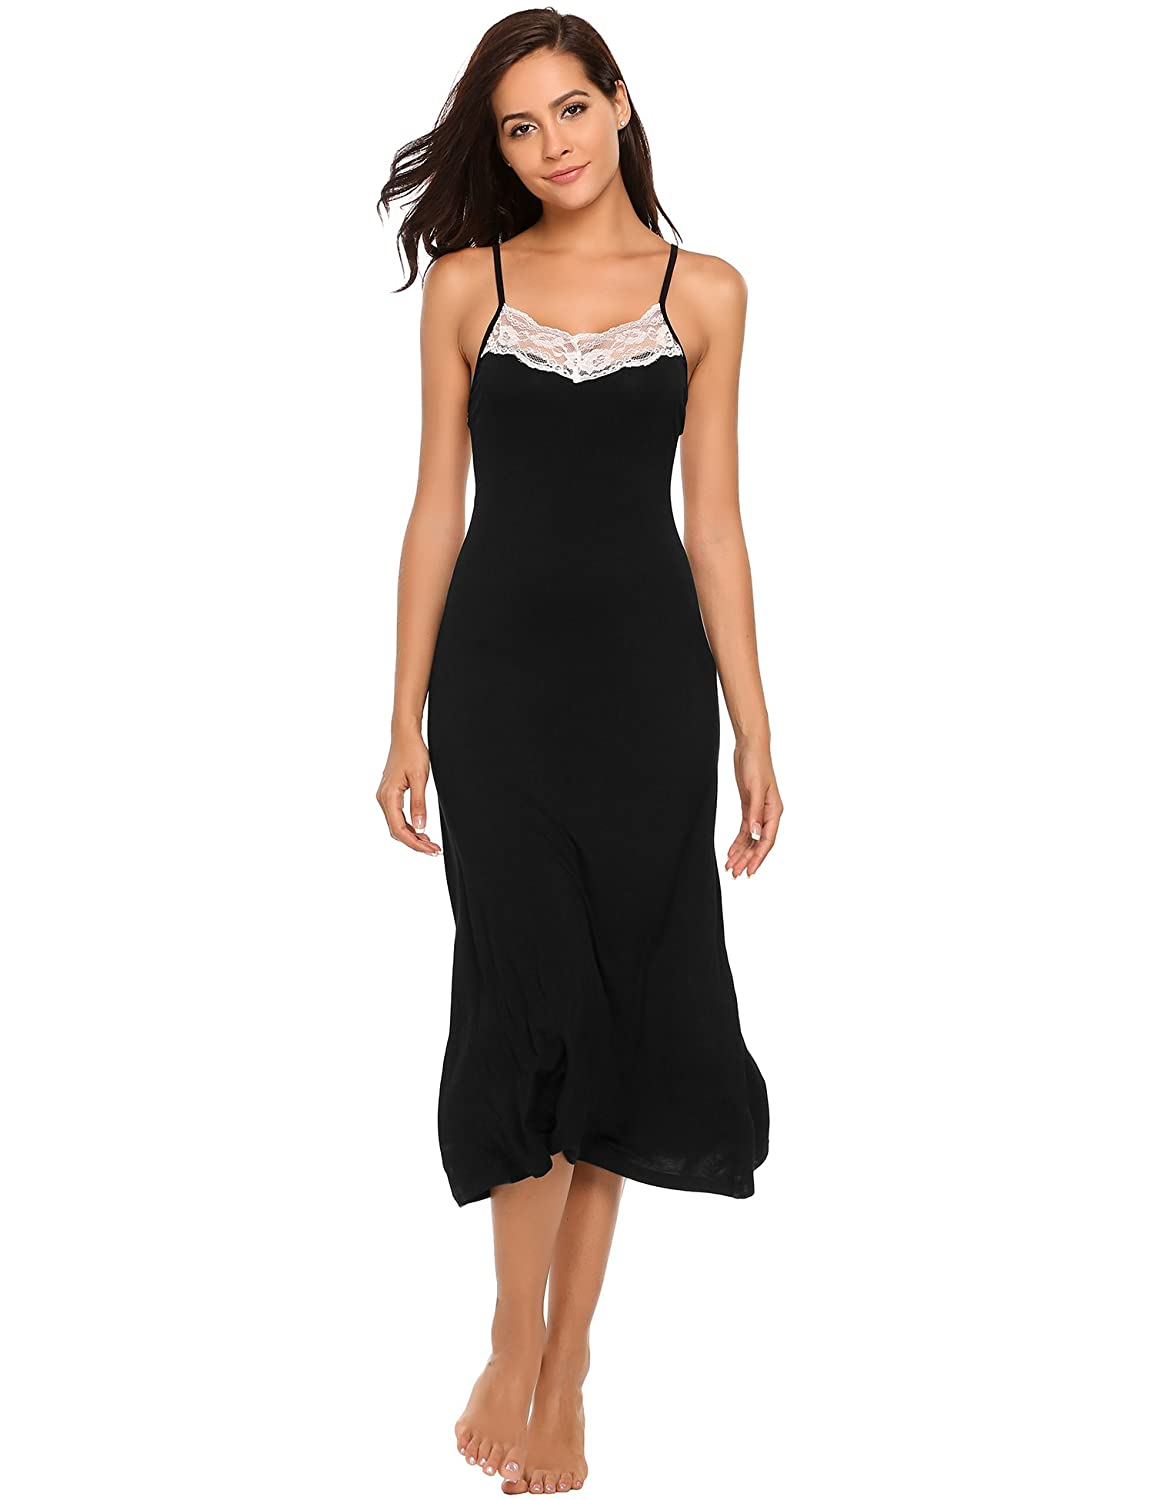 822028700803 Adjustable Spaghetti straps,Floral lace trim at neckline and back,Full  Length Nightgown. Comfort: Soft knit fabric with just a hint of stretch  feels dreamy ...